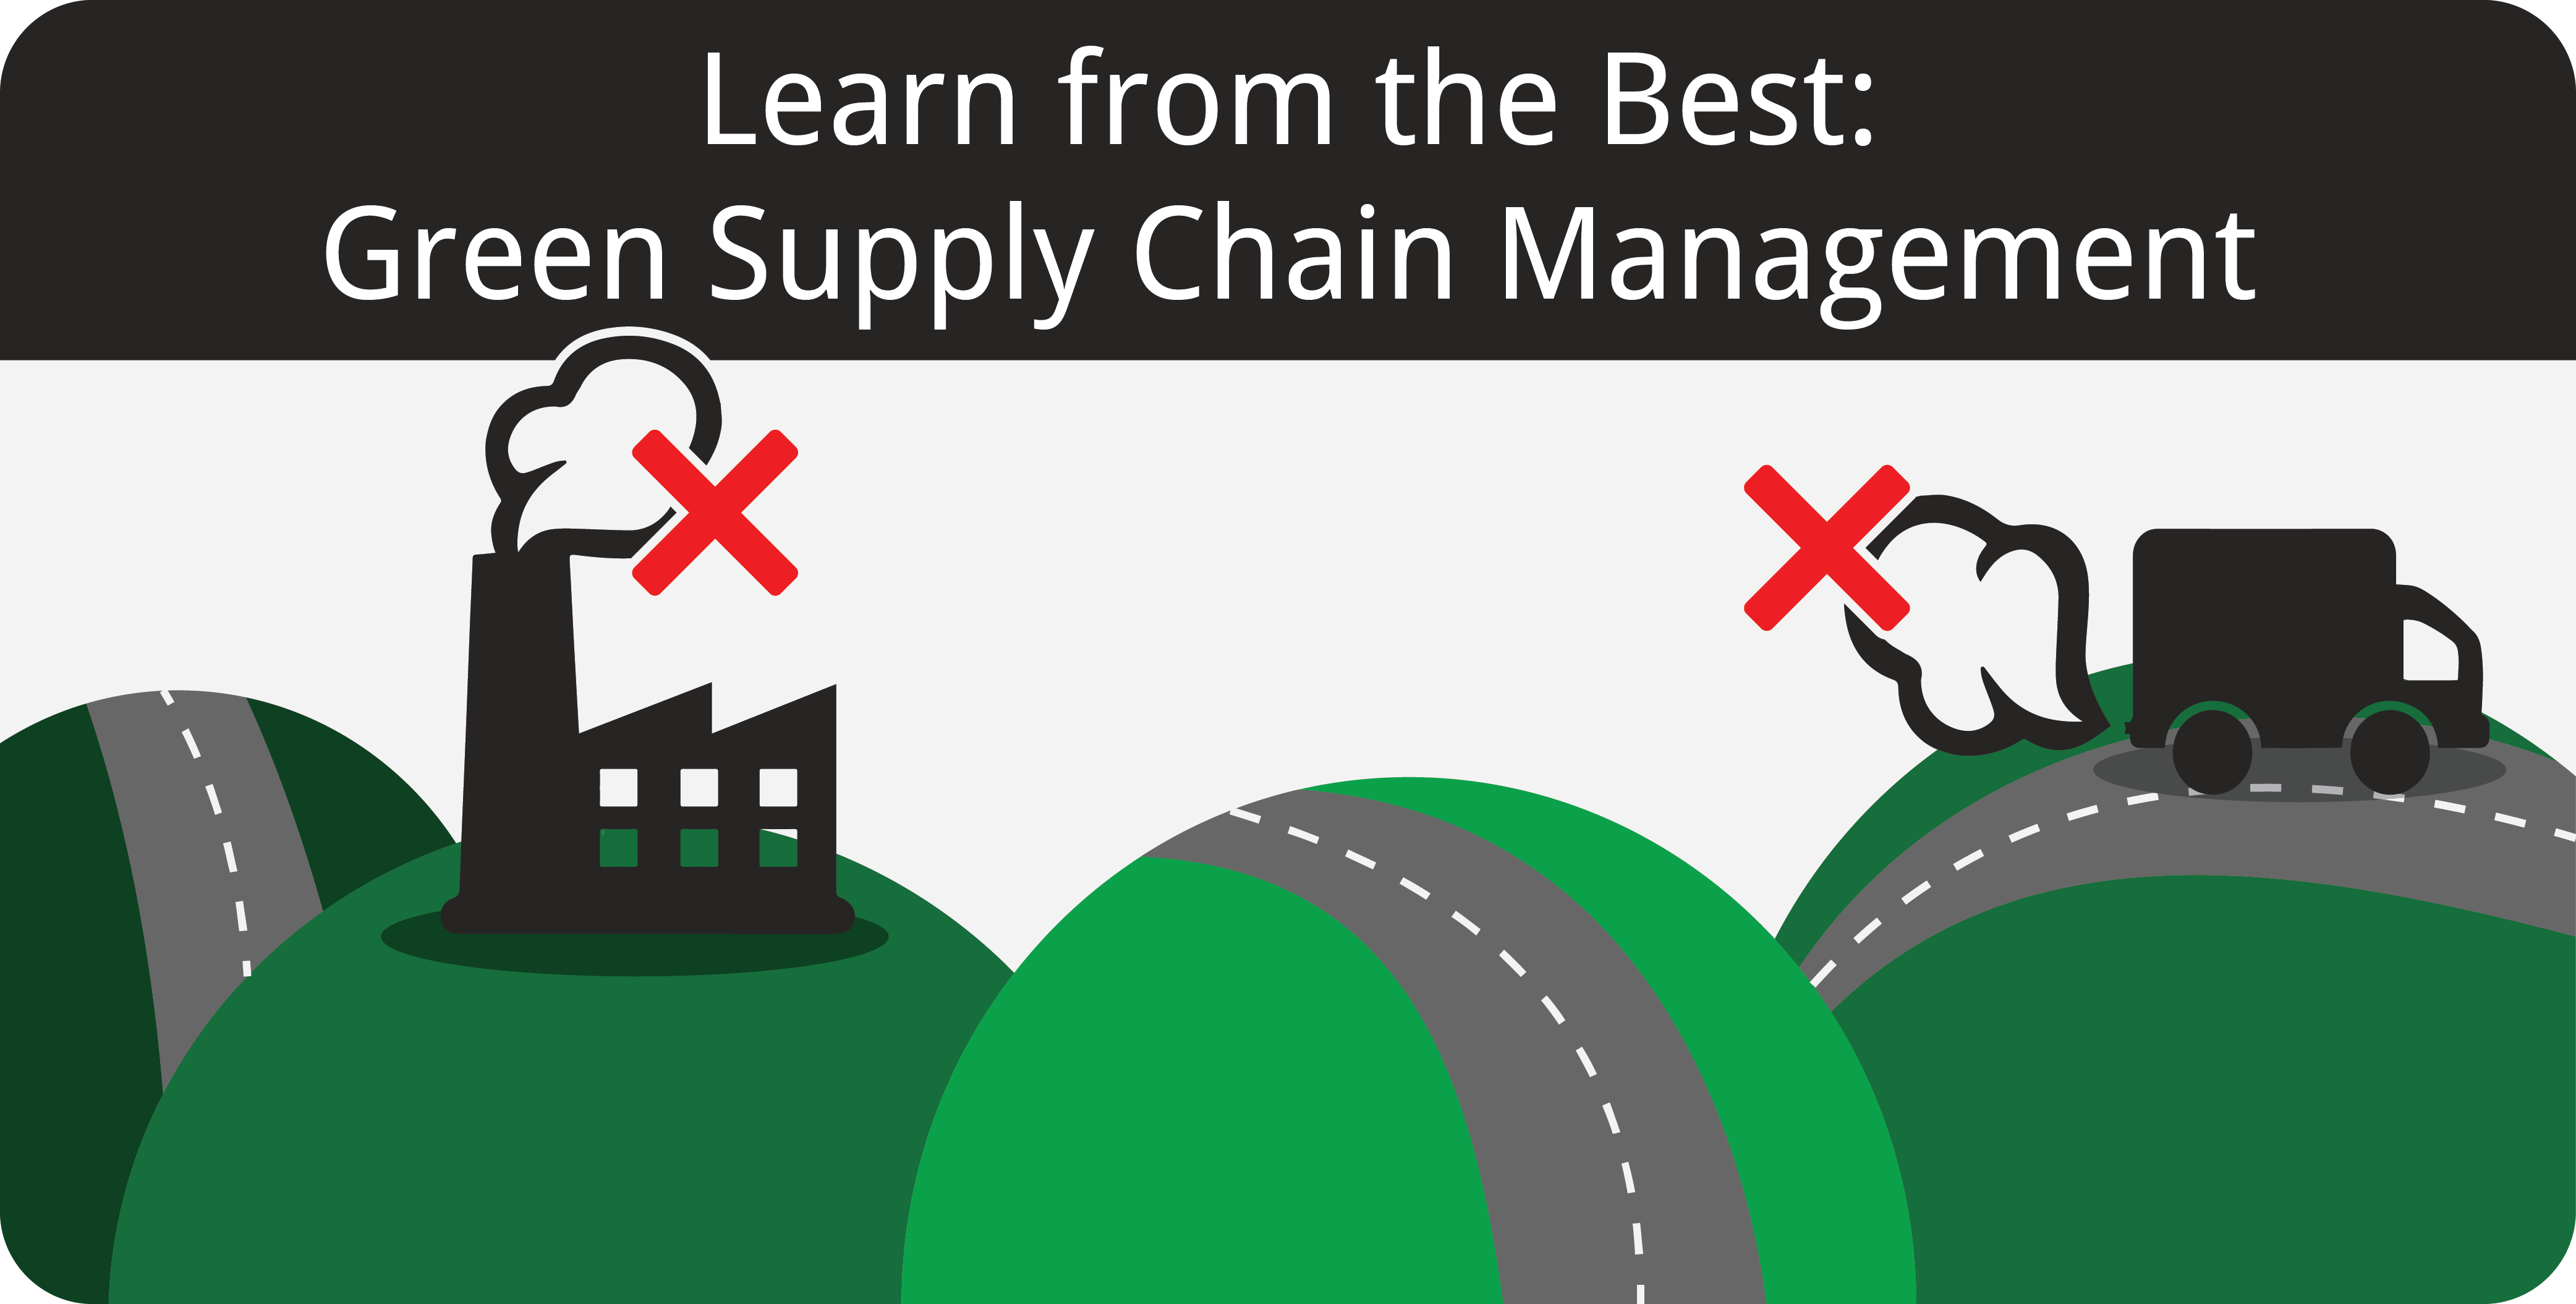 Green Supply Chain Management Featured Image